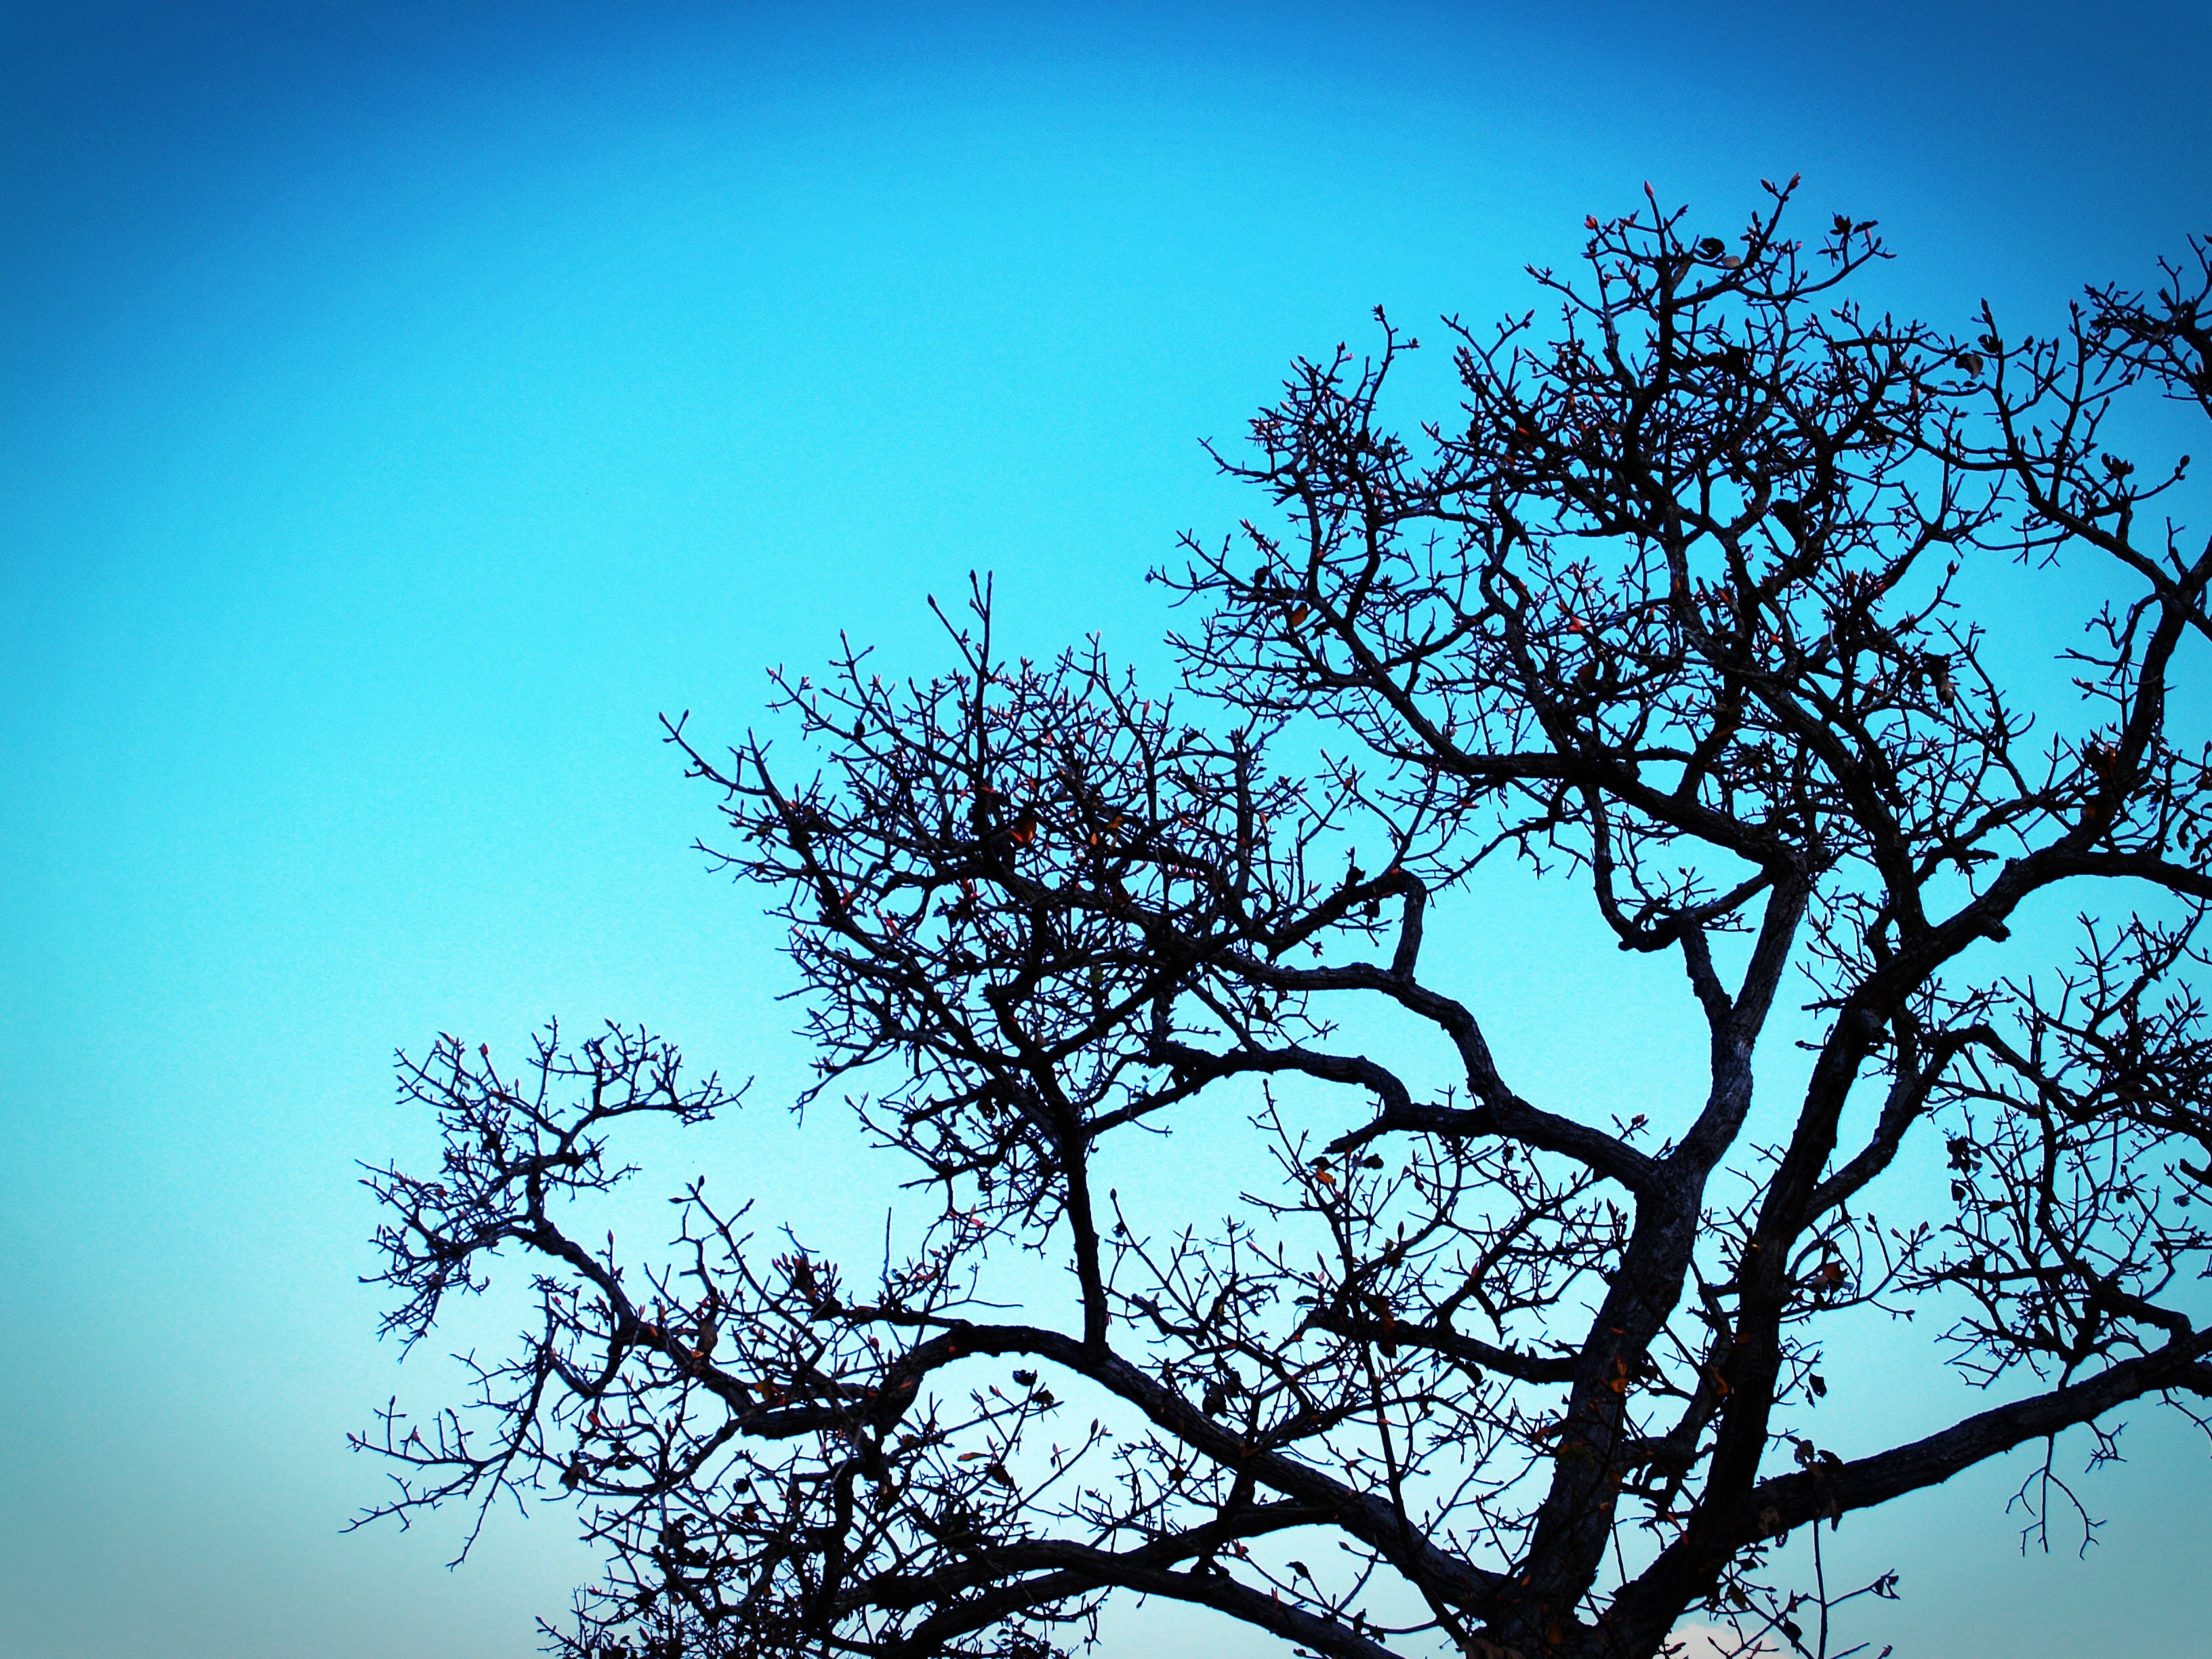 Free stock photo of nature, sky, branches, leaves